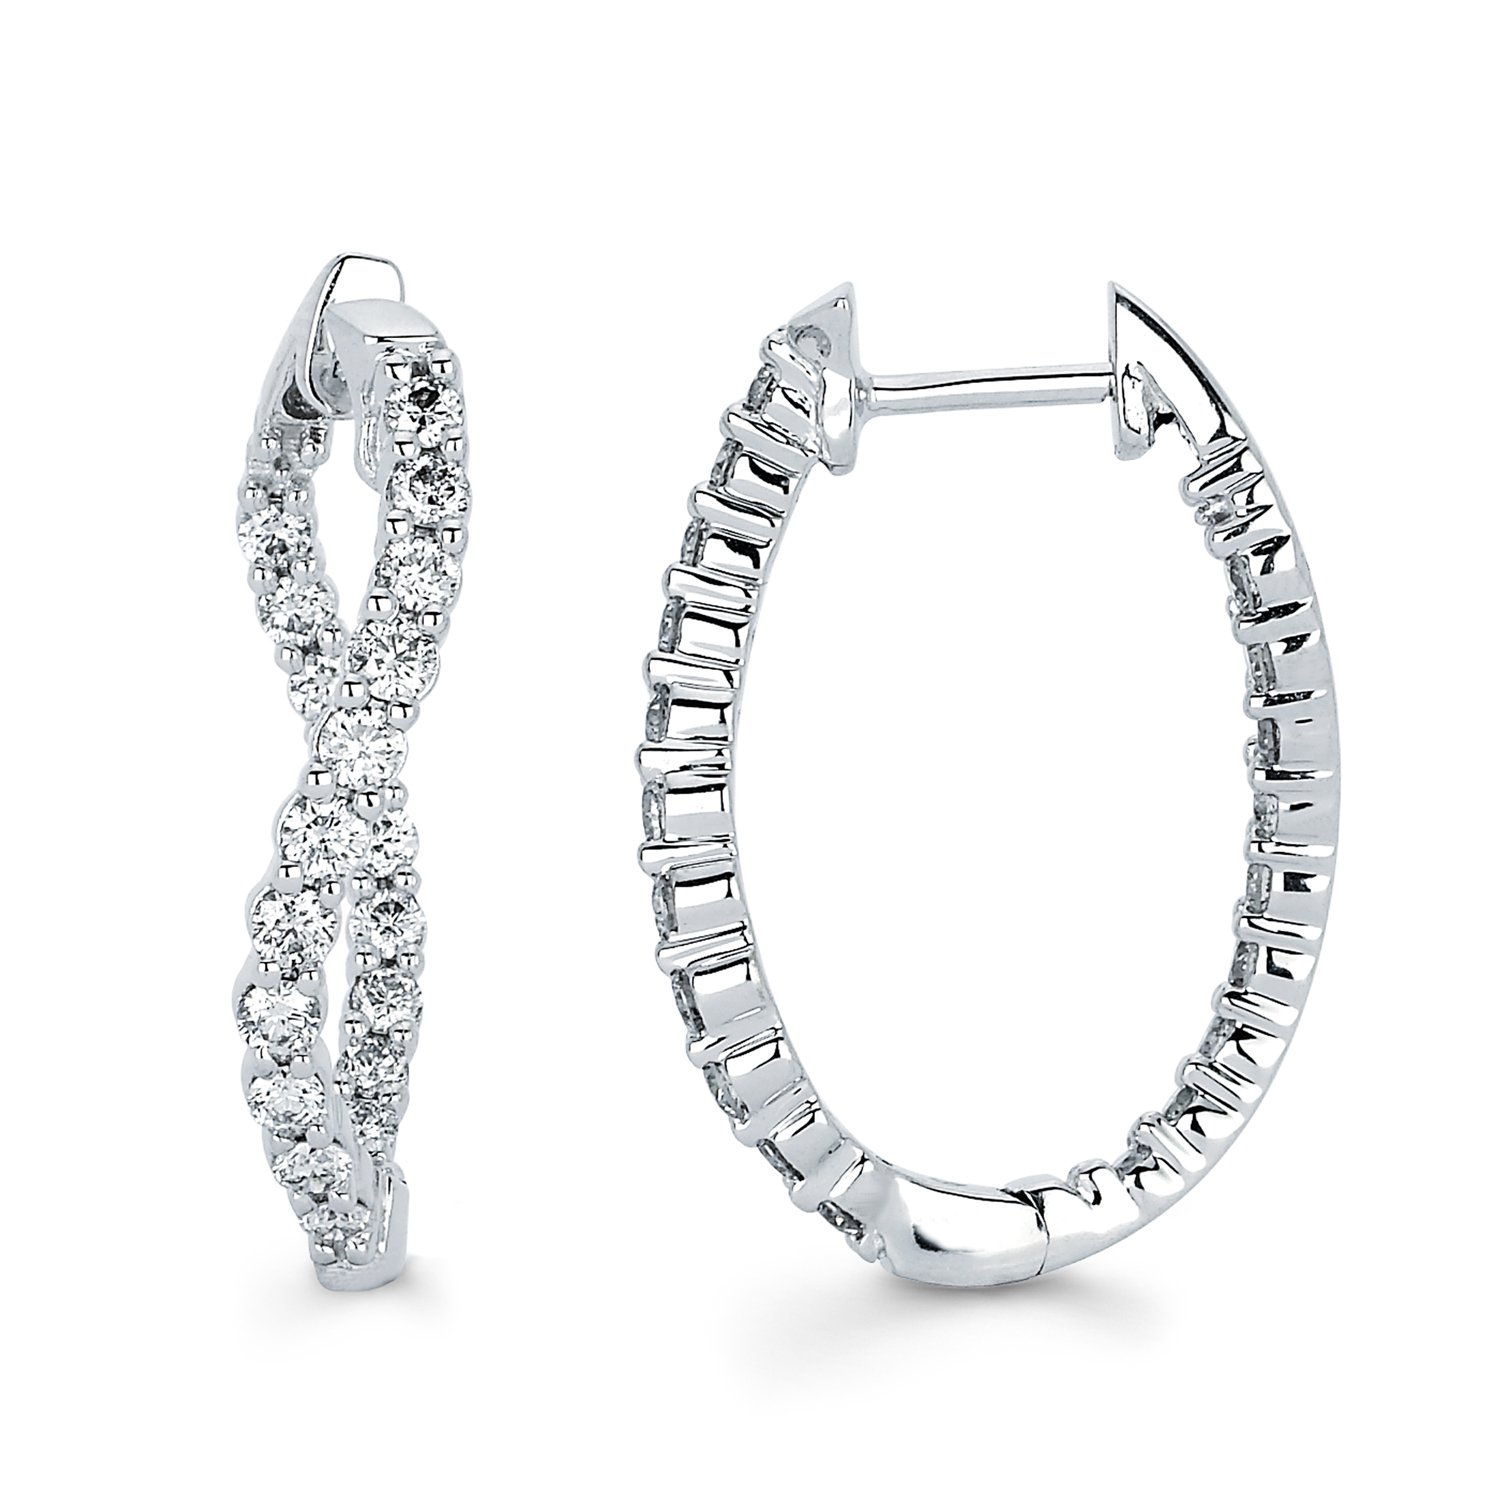 14K White Gold Diamond Twisted Inside-Out Hoop Earrings (1.50 cttw., I Color, I1 Clarity) 1''